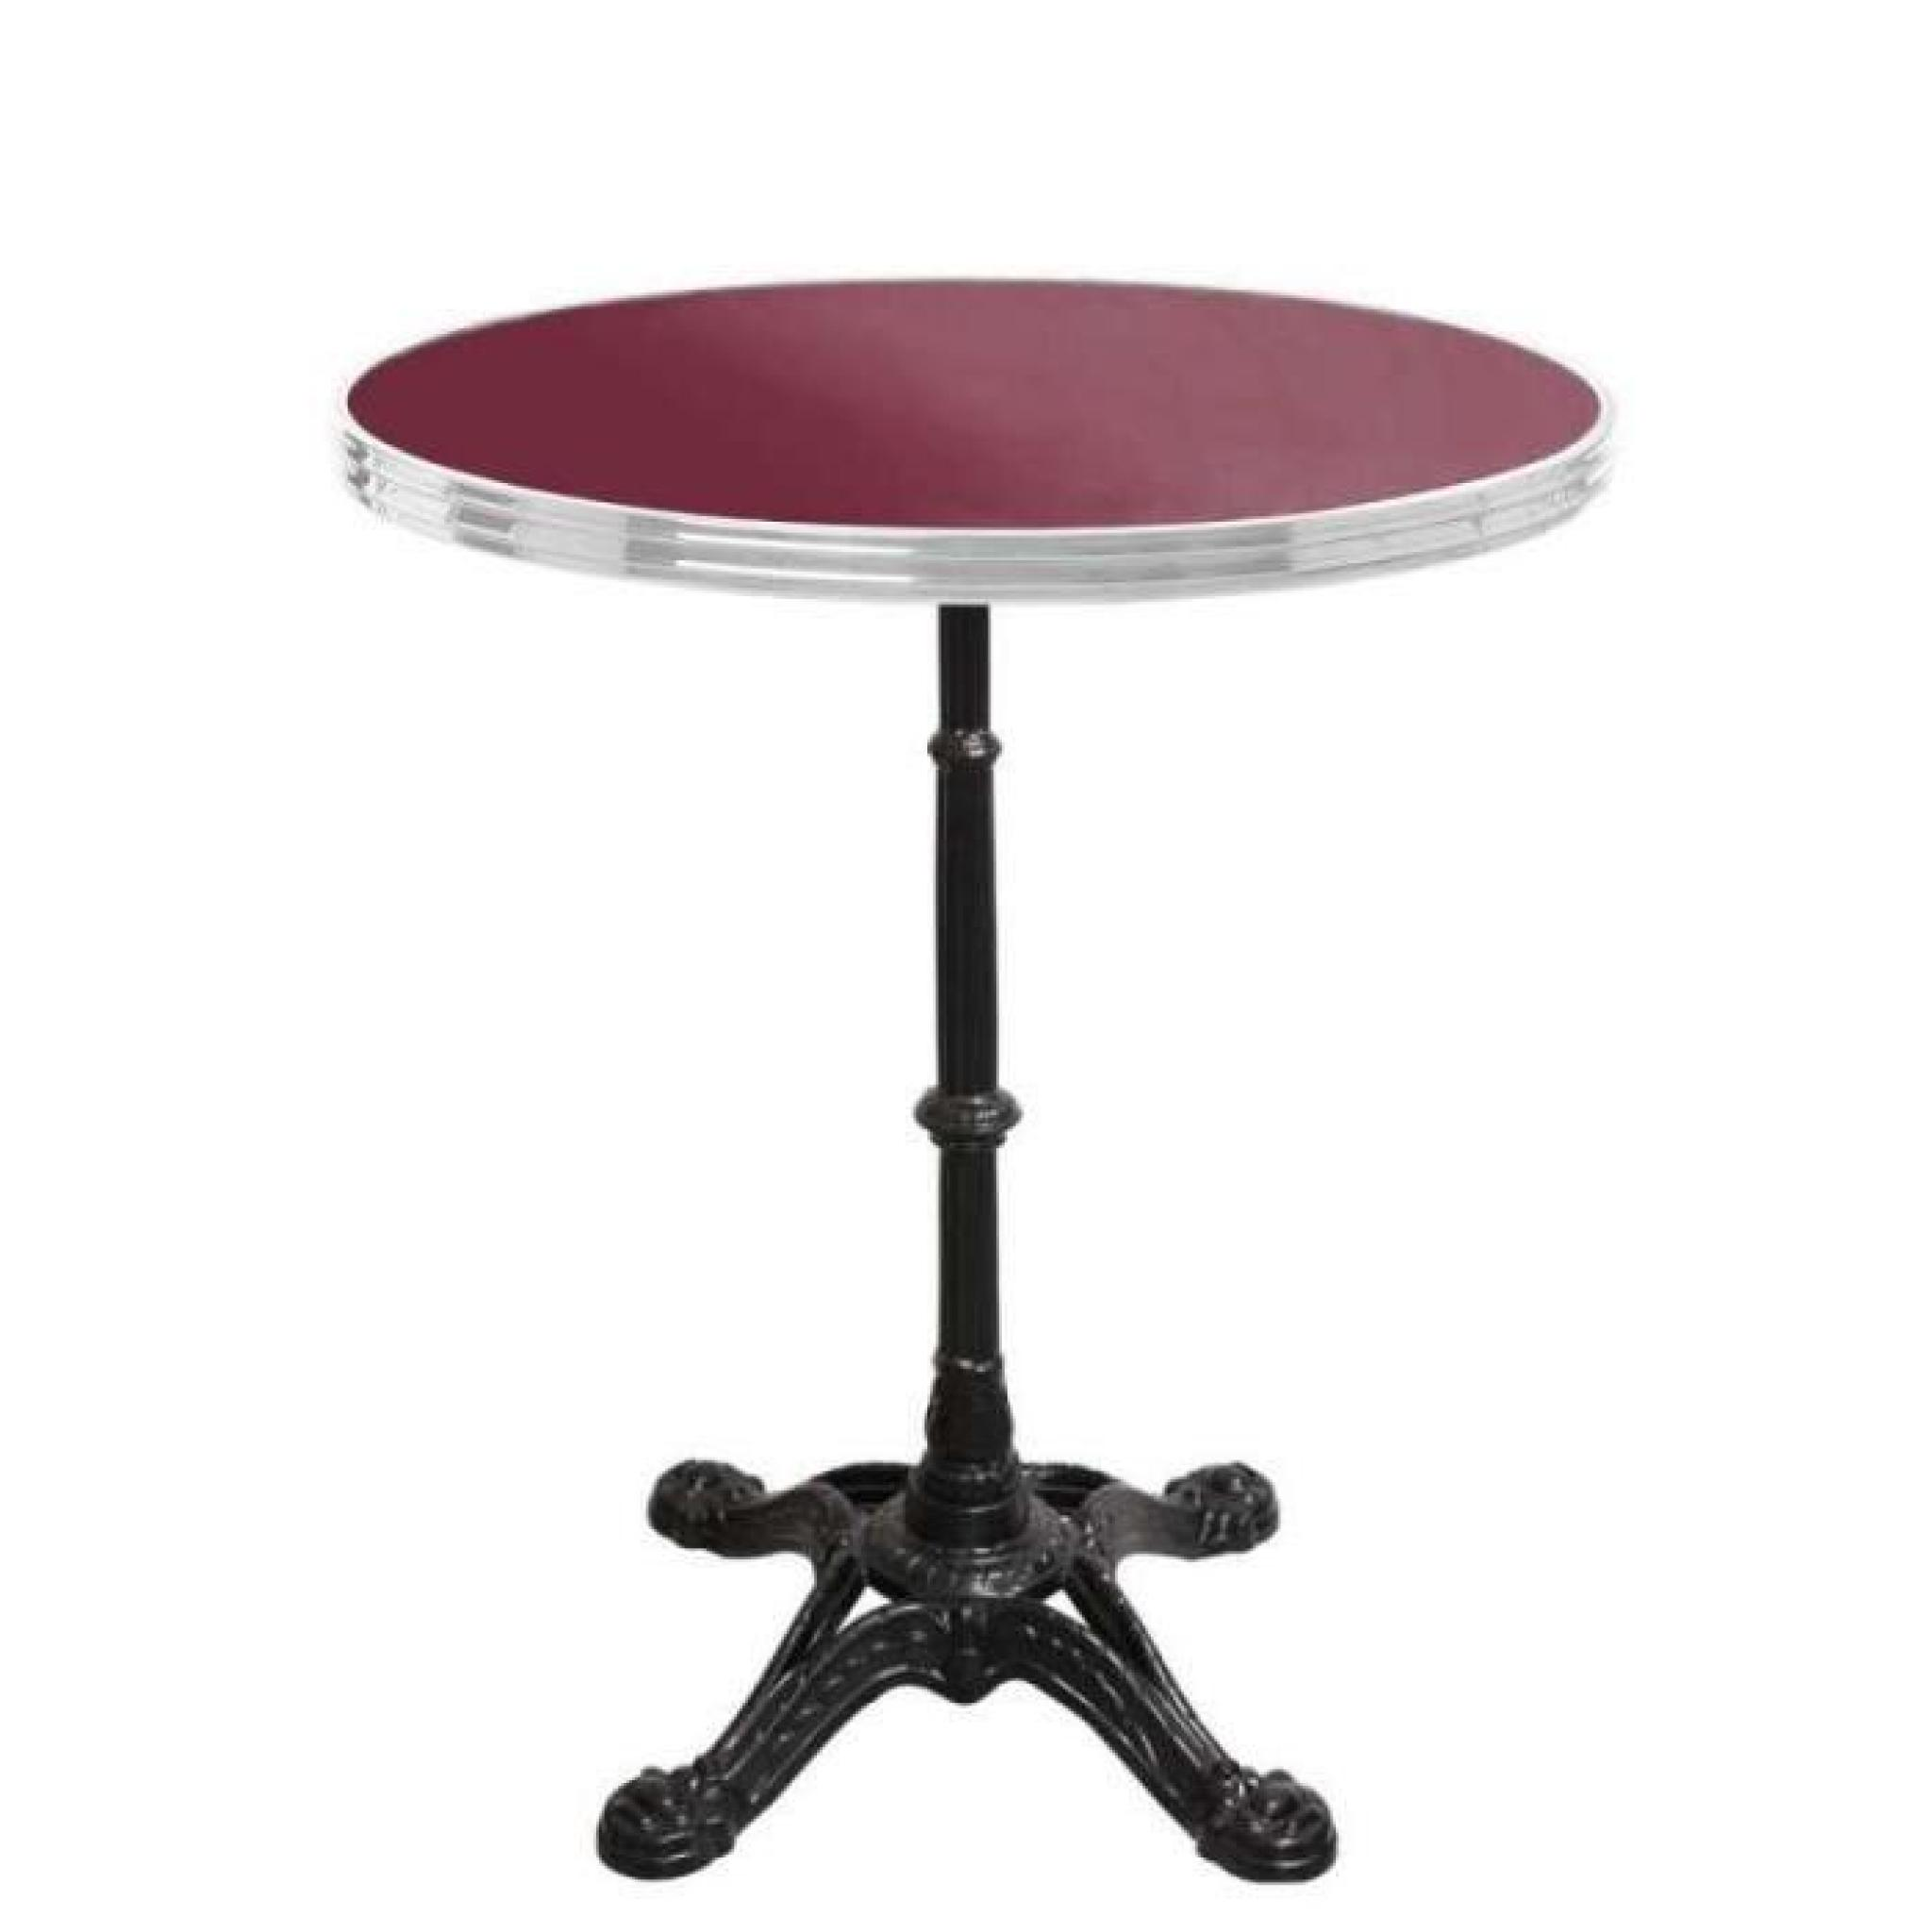 table bistrot ronde rouge avec cerclage en inox - pied 4 branches ...